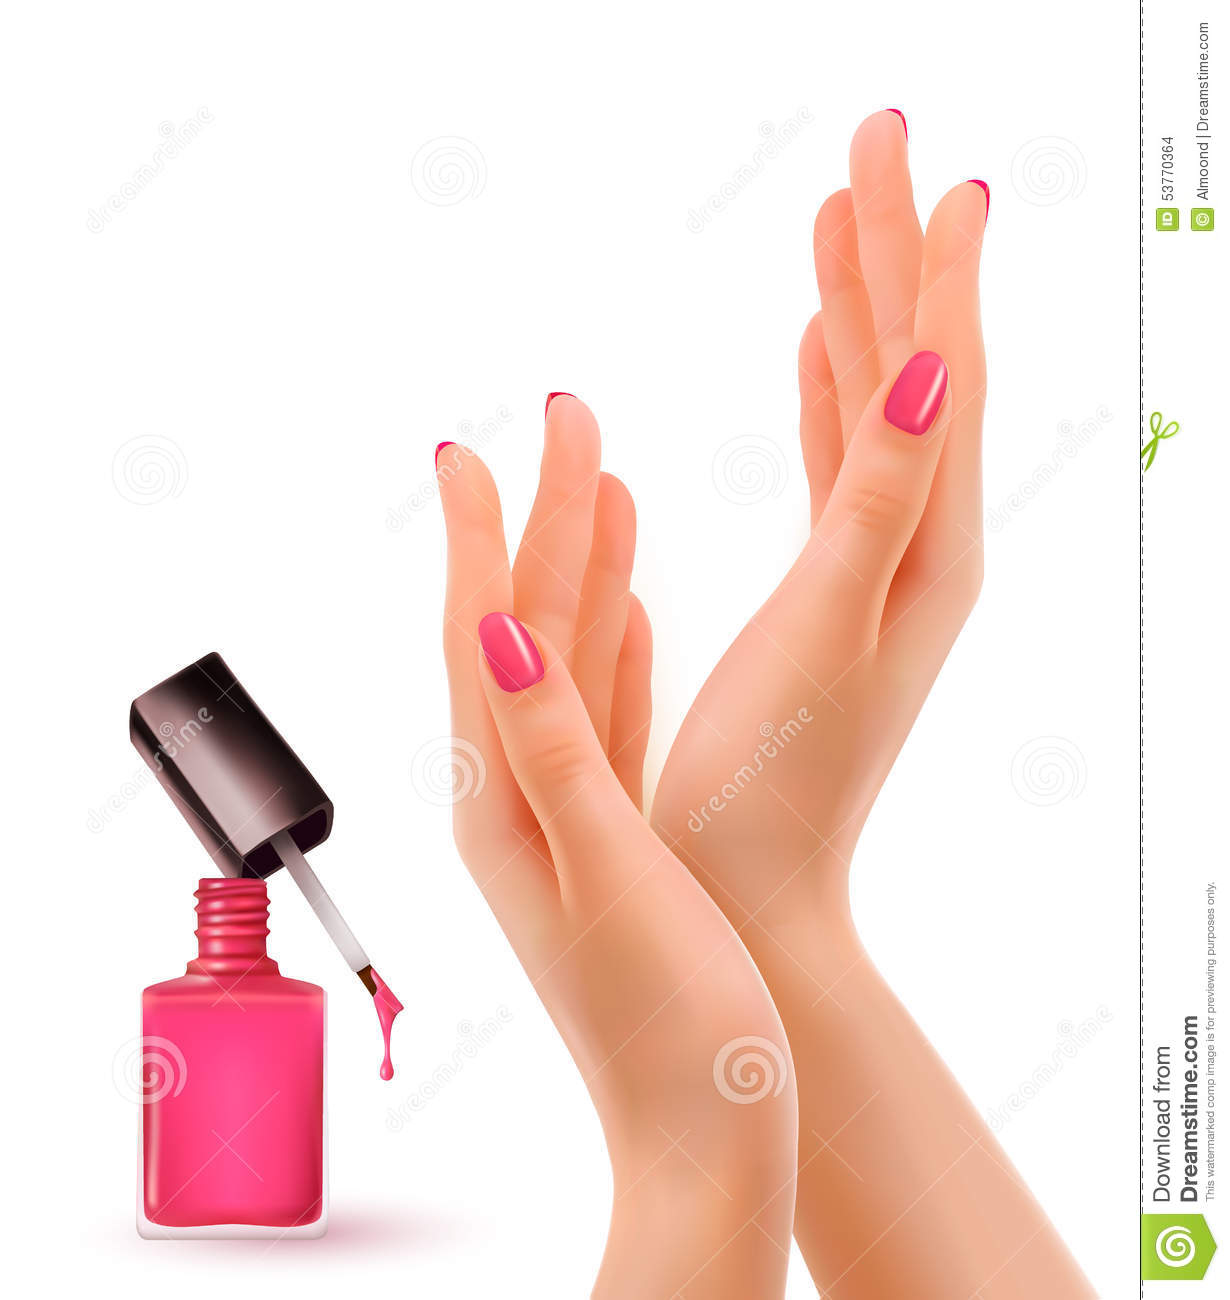 Nail Polish Colors For Younger Looking Hands: Hands With Pink Polished Nails. Nail Polish Bottle. Stock